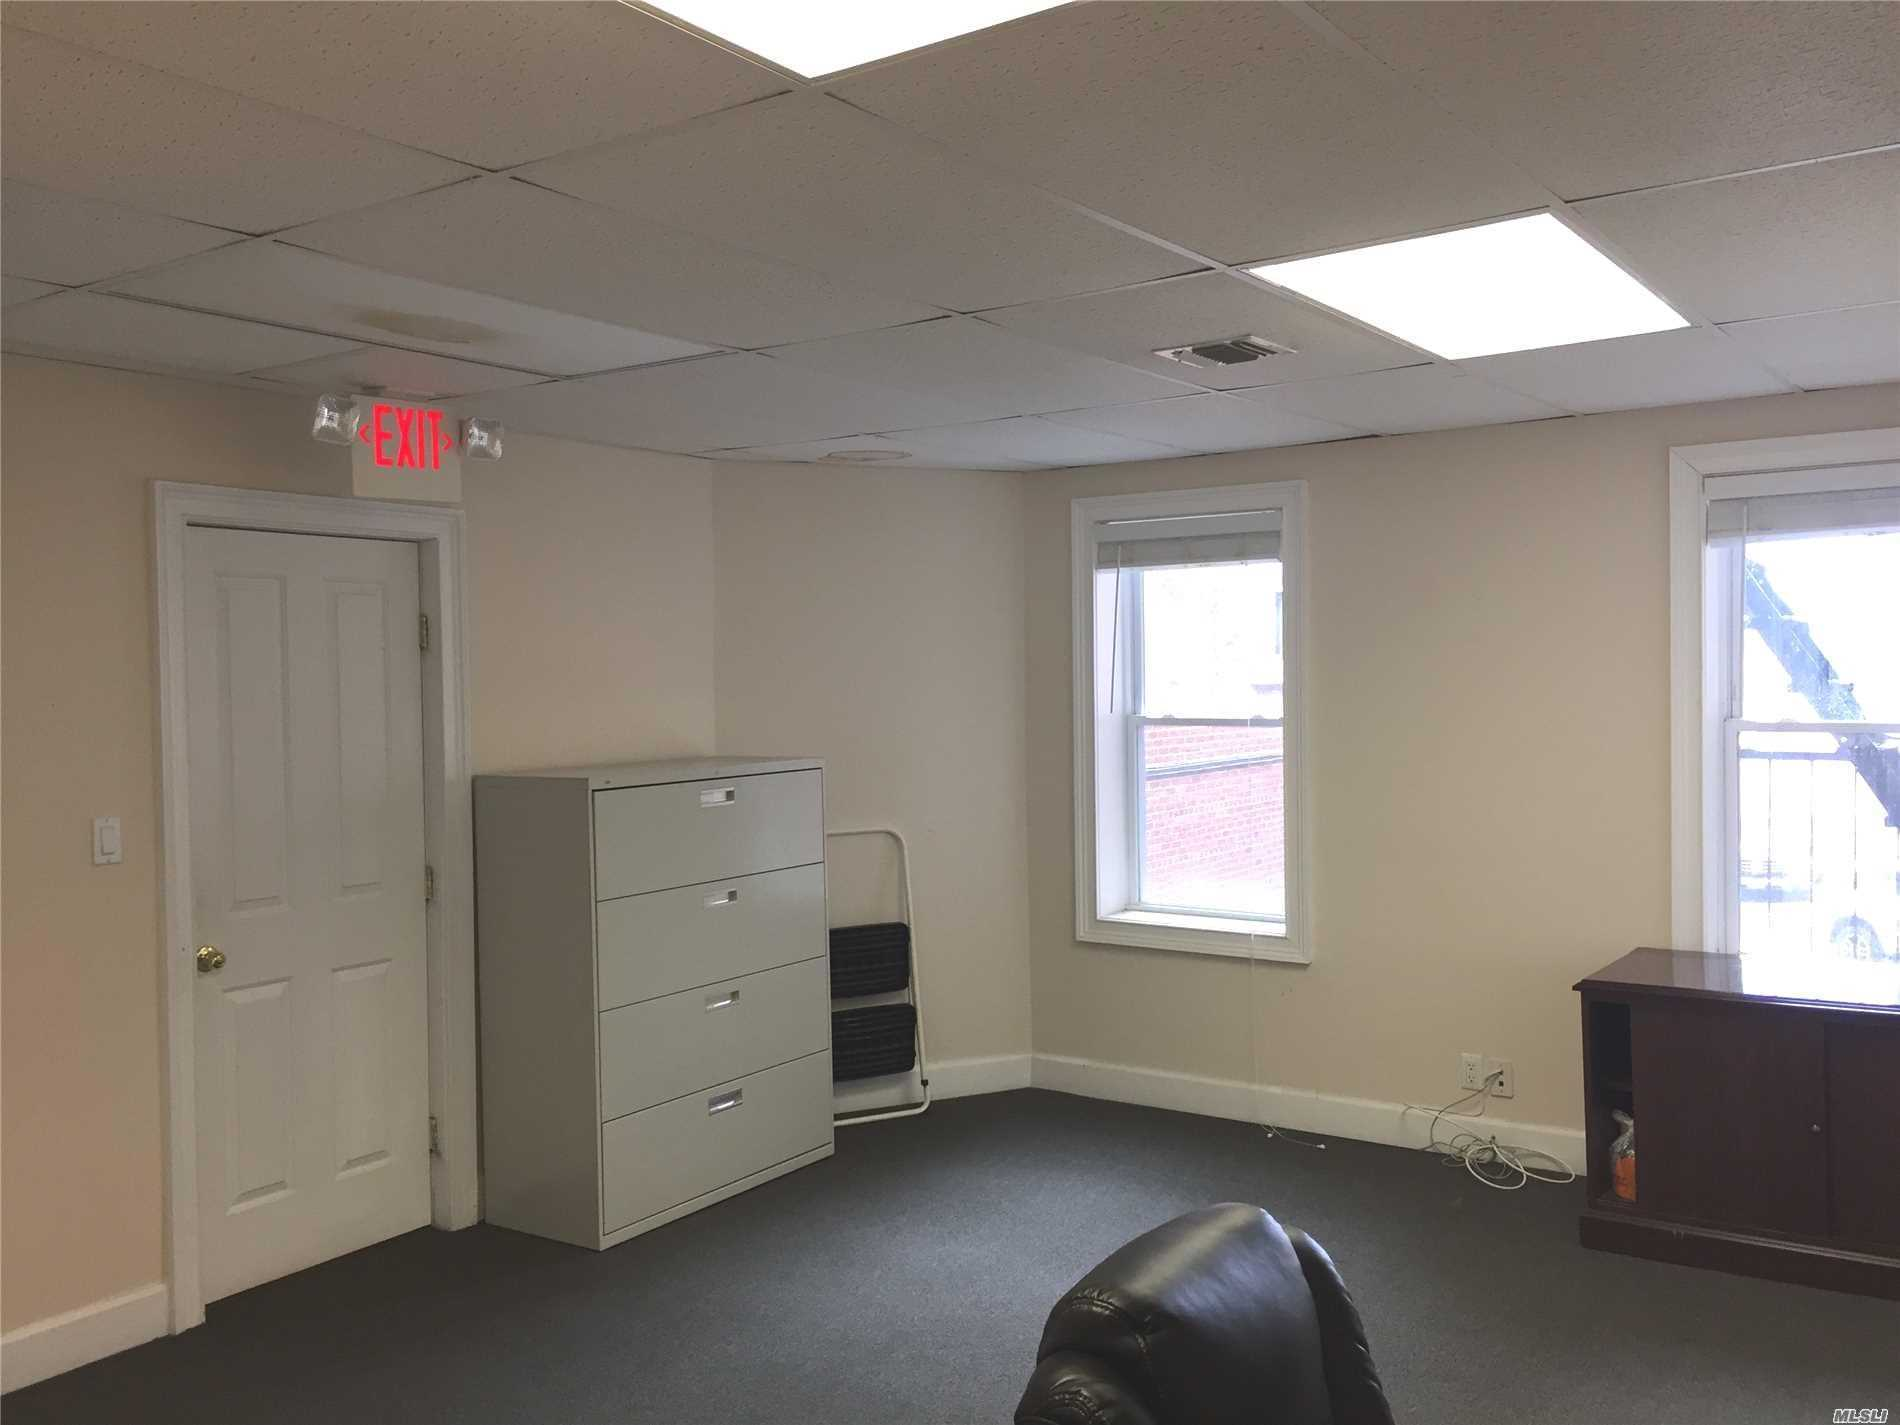 2nd Story Office Space For Lease Great Location 1/2 Block From Lirr. In Heart Of Village. Private Entrance, Quiet, Close To Parking. Available Space:: 797Sf Consisting Of 3 Offices